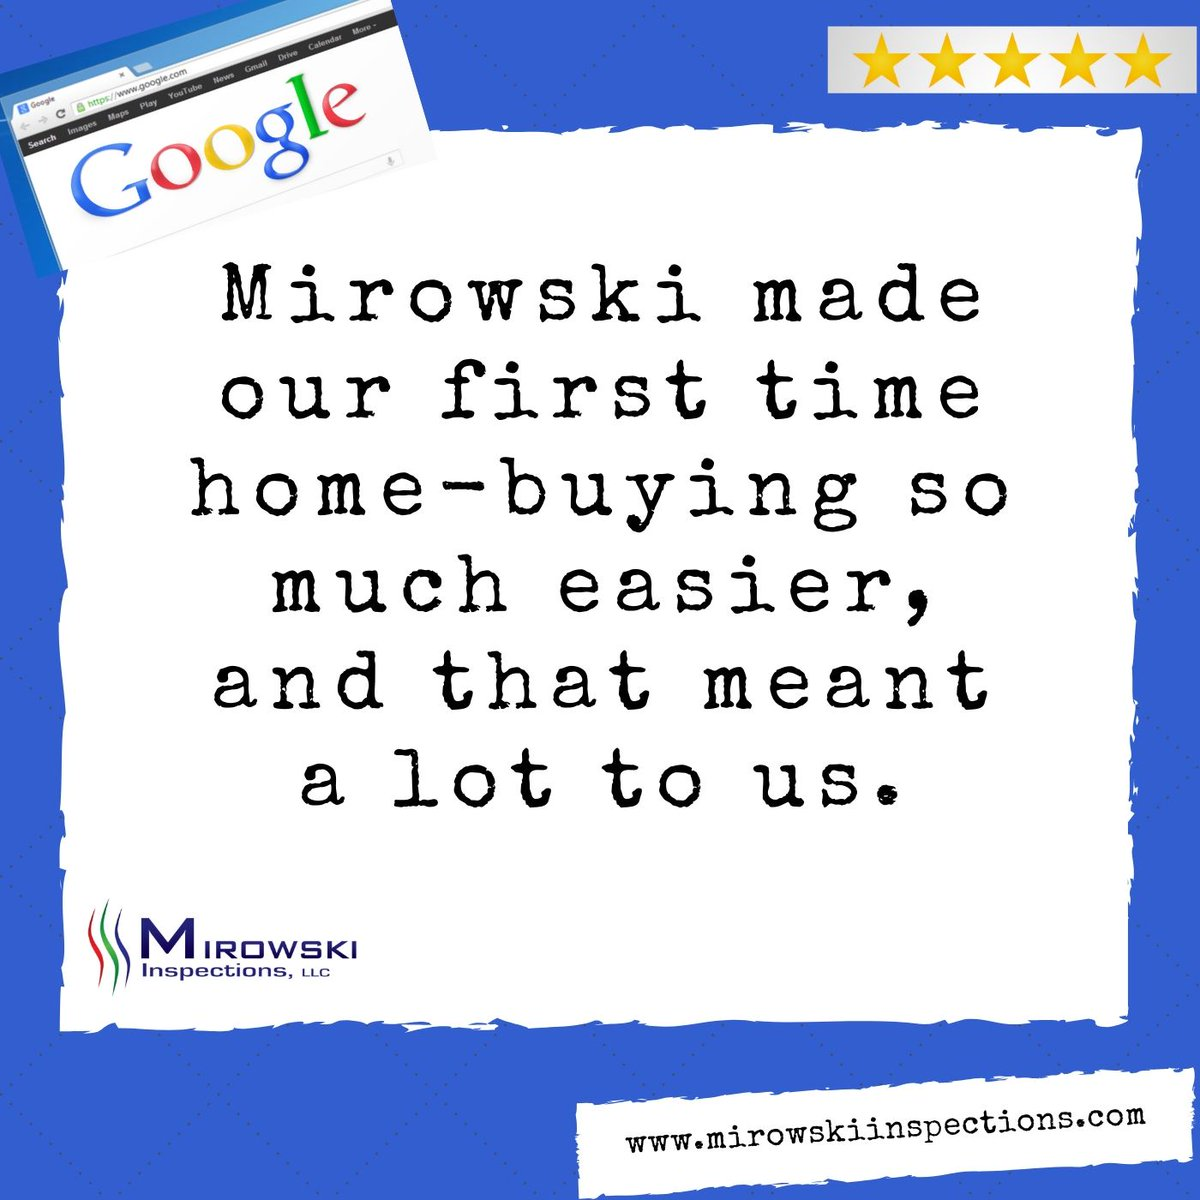 Congratulations on your new home!   #mirowskiinspections #homeinspections #homeinspector #realestate #inspectorlife #ashiinspectors #inspectionbusiness #homeinspectorsnearme #homemaintenance #houses #ashi #ashiinspector #homeinspectorpro #besthomeinspectionspic.twitter.com/GbpuddMJVC